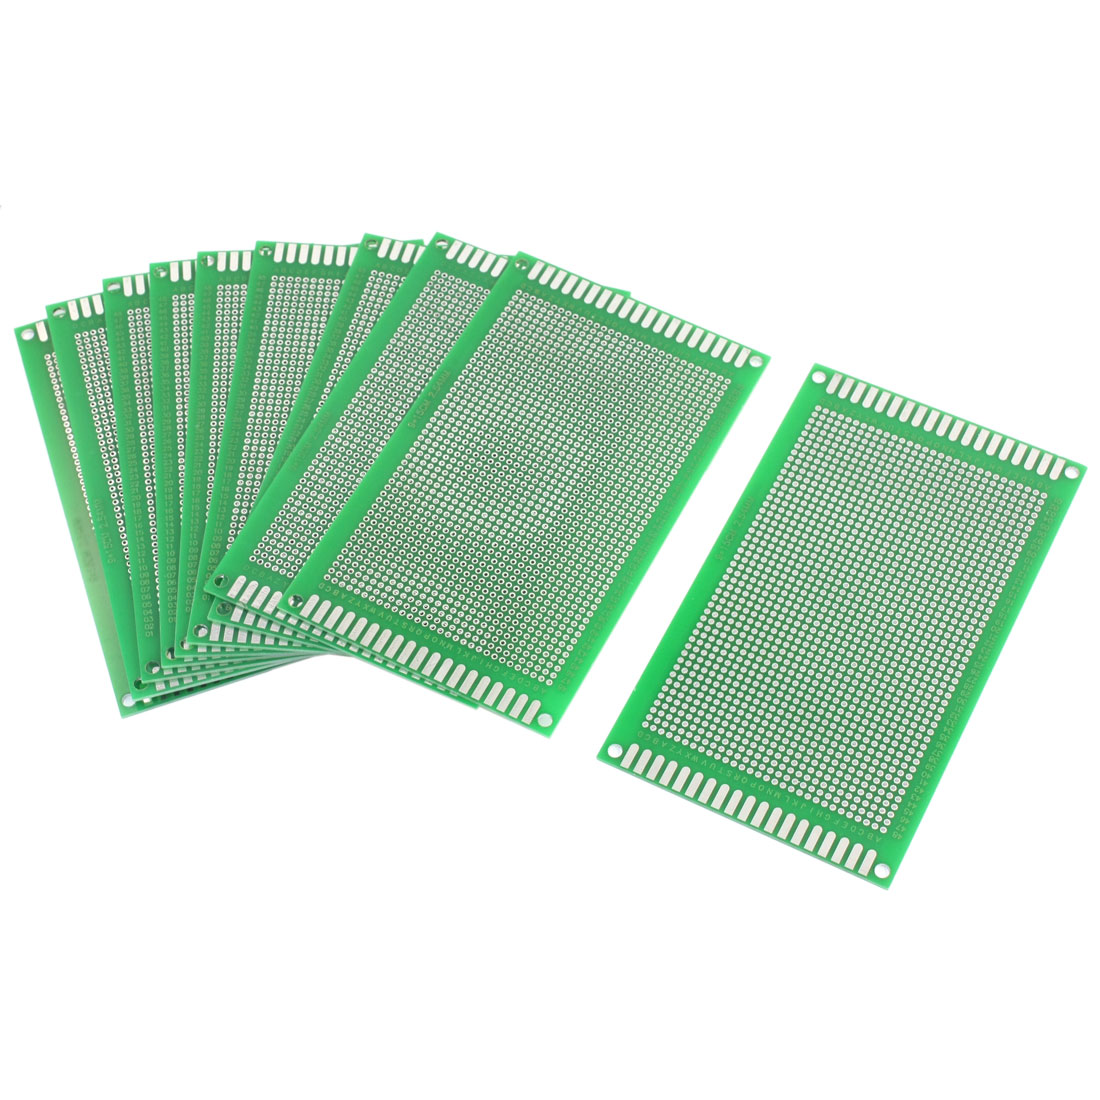 10Pcs DIY Universal Double Sided Protoboard Glass Fiber Prototyping PCB Printed Circuit Board 9cm x 15cm